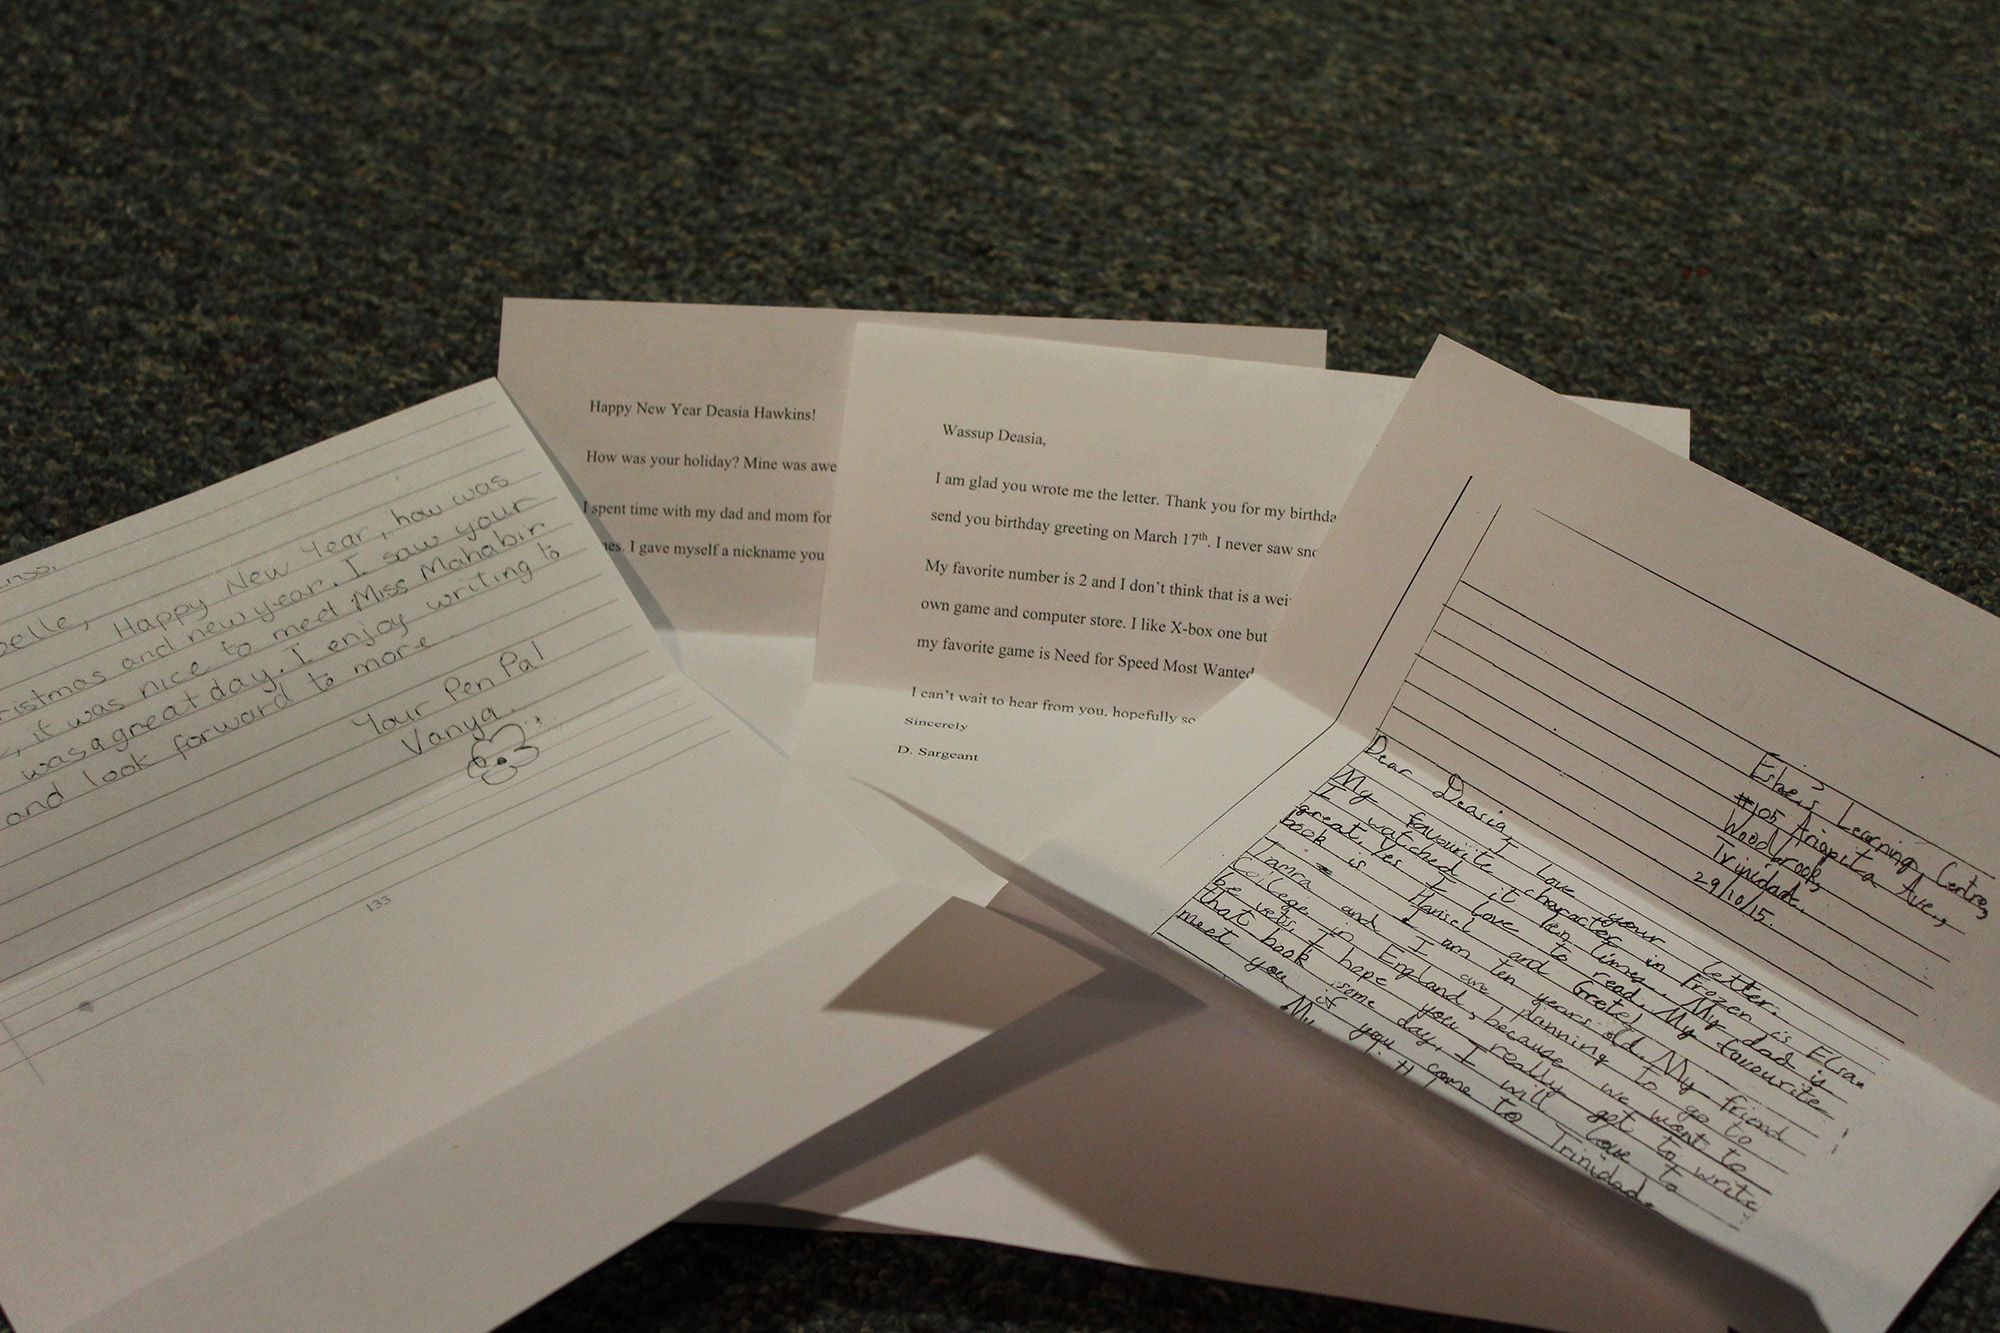 Some letters received from a Hamilton pen pal.